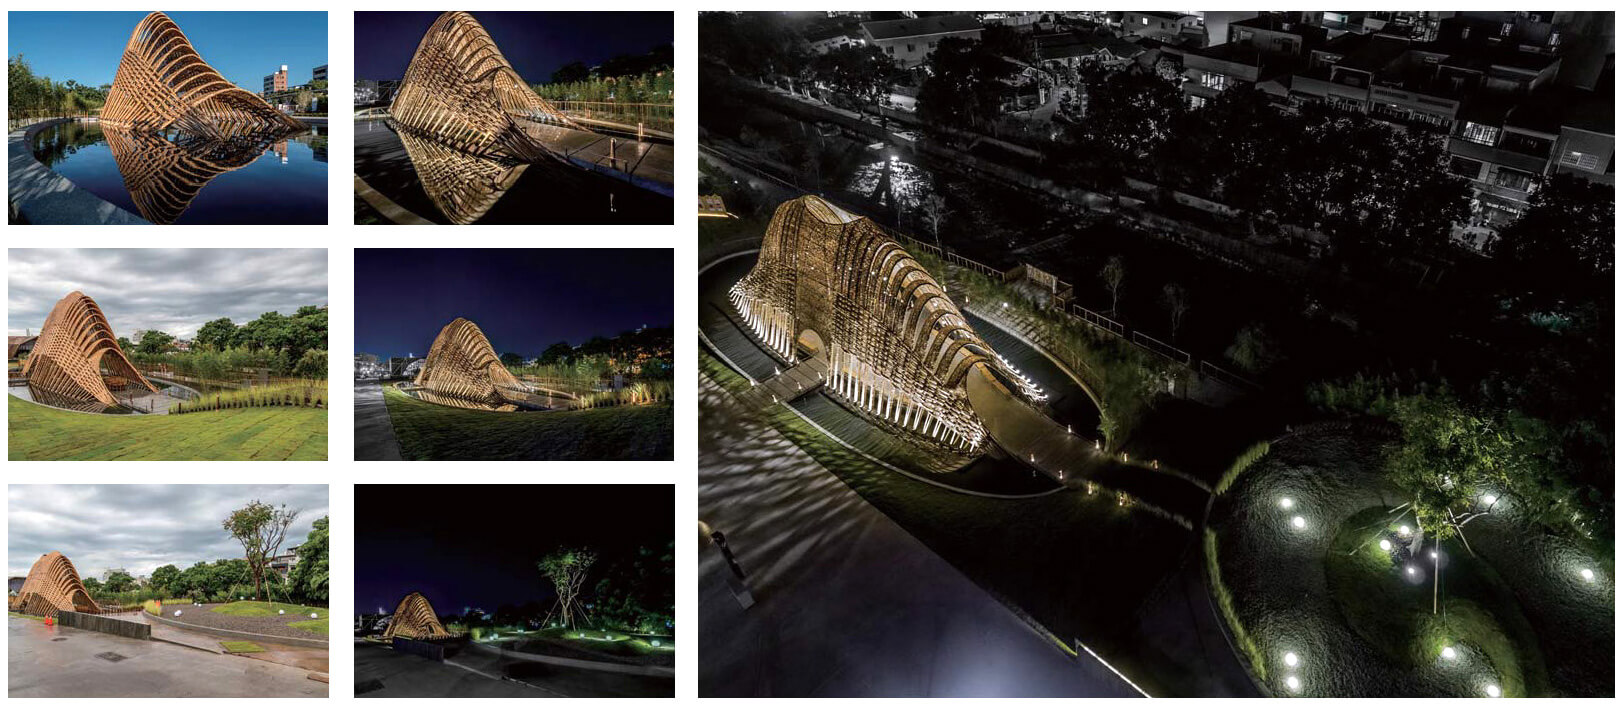 The pavilion was designed and constructed over 18 months | Zuo Studio creates the Bamboo Pavilion for Taichung World Flora Exposition | STIRworld